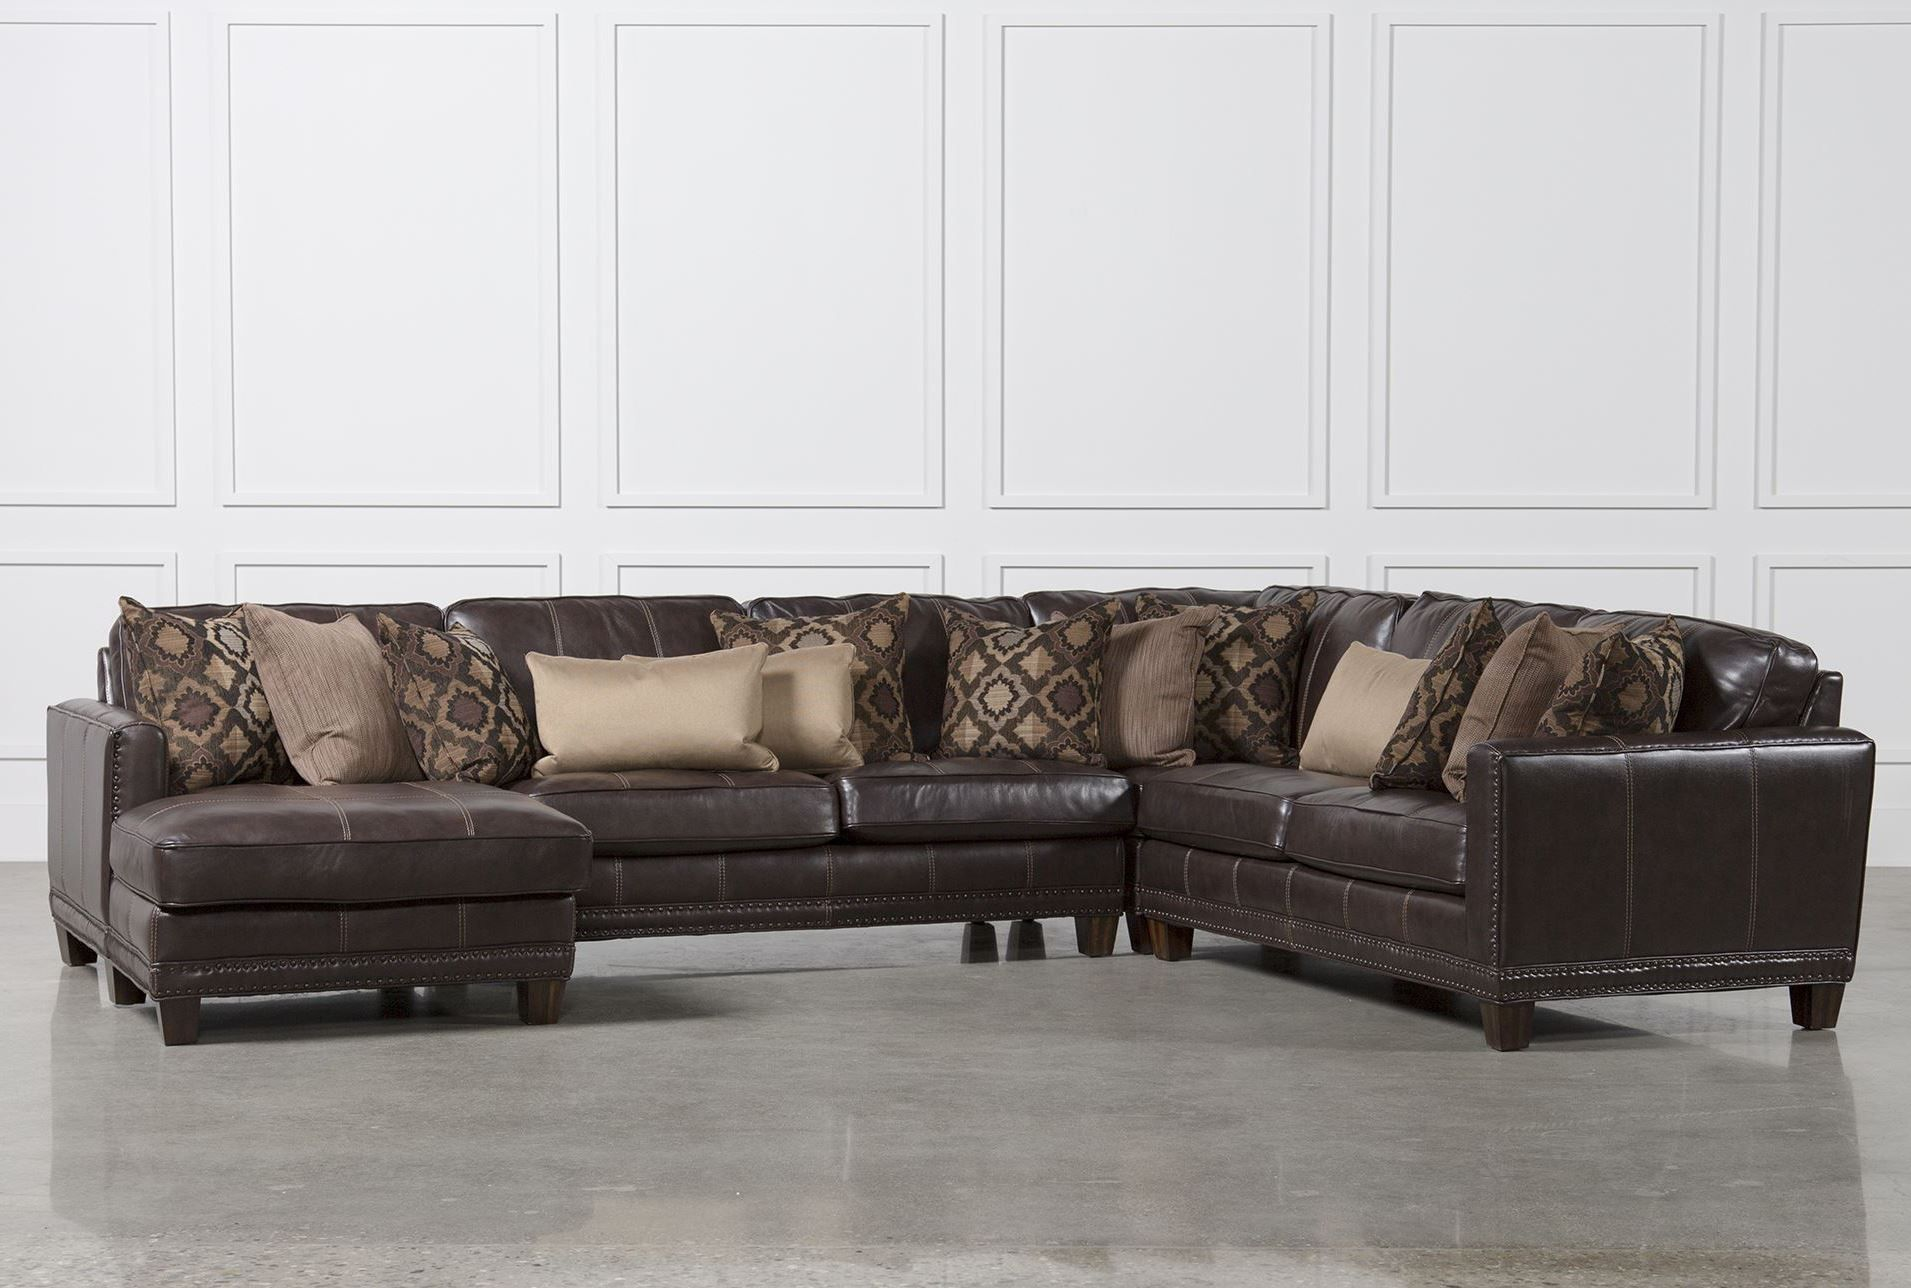 Surprising Barnaby 4 Piece Sectional W Laf Chaise Signature Couches Beatyapartments Chair Design Images Beatyapartmentscom